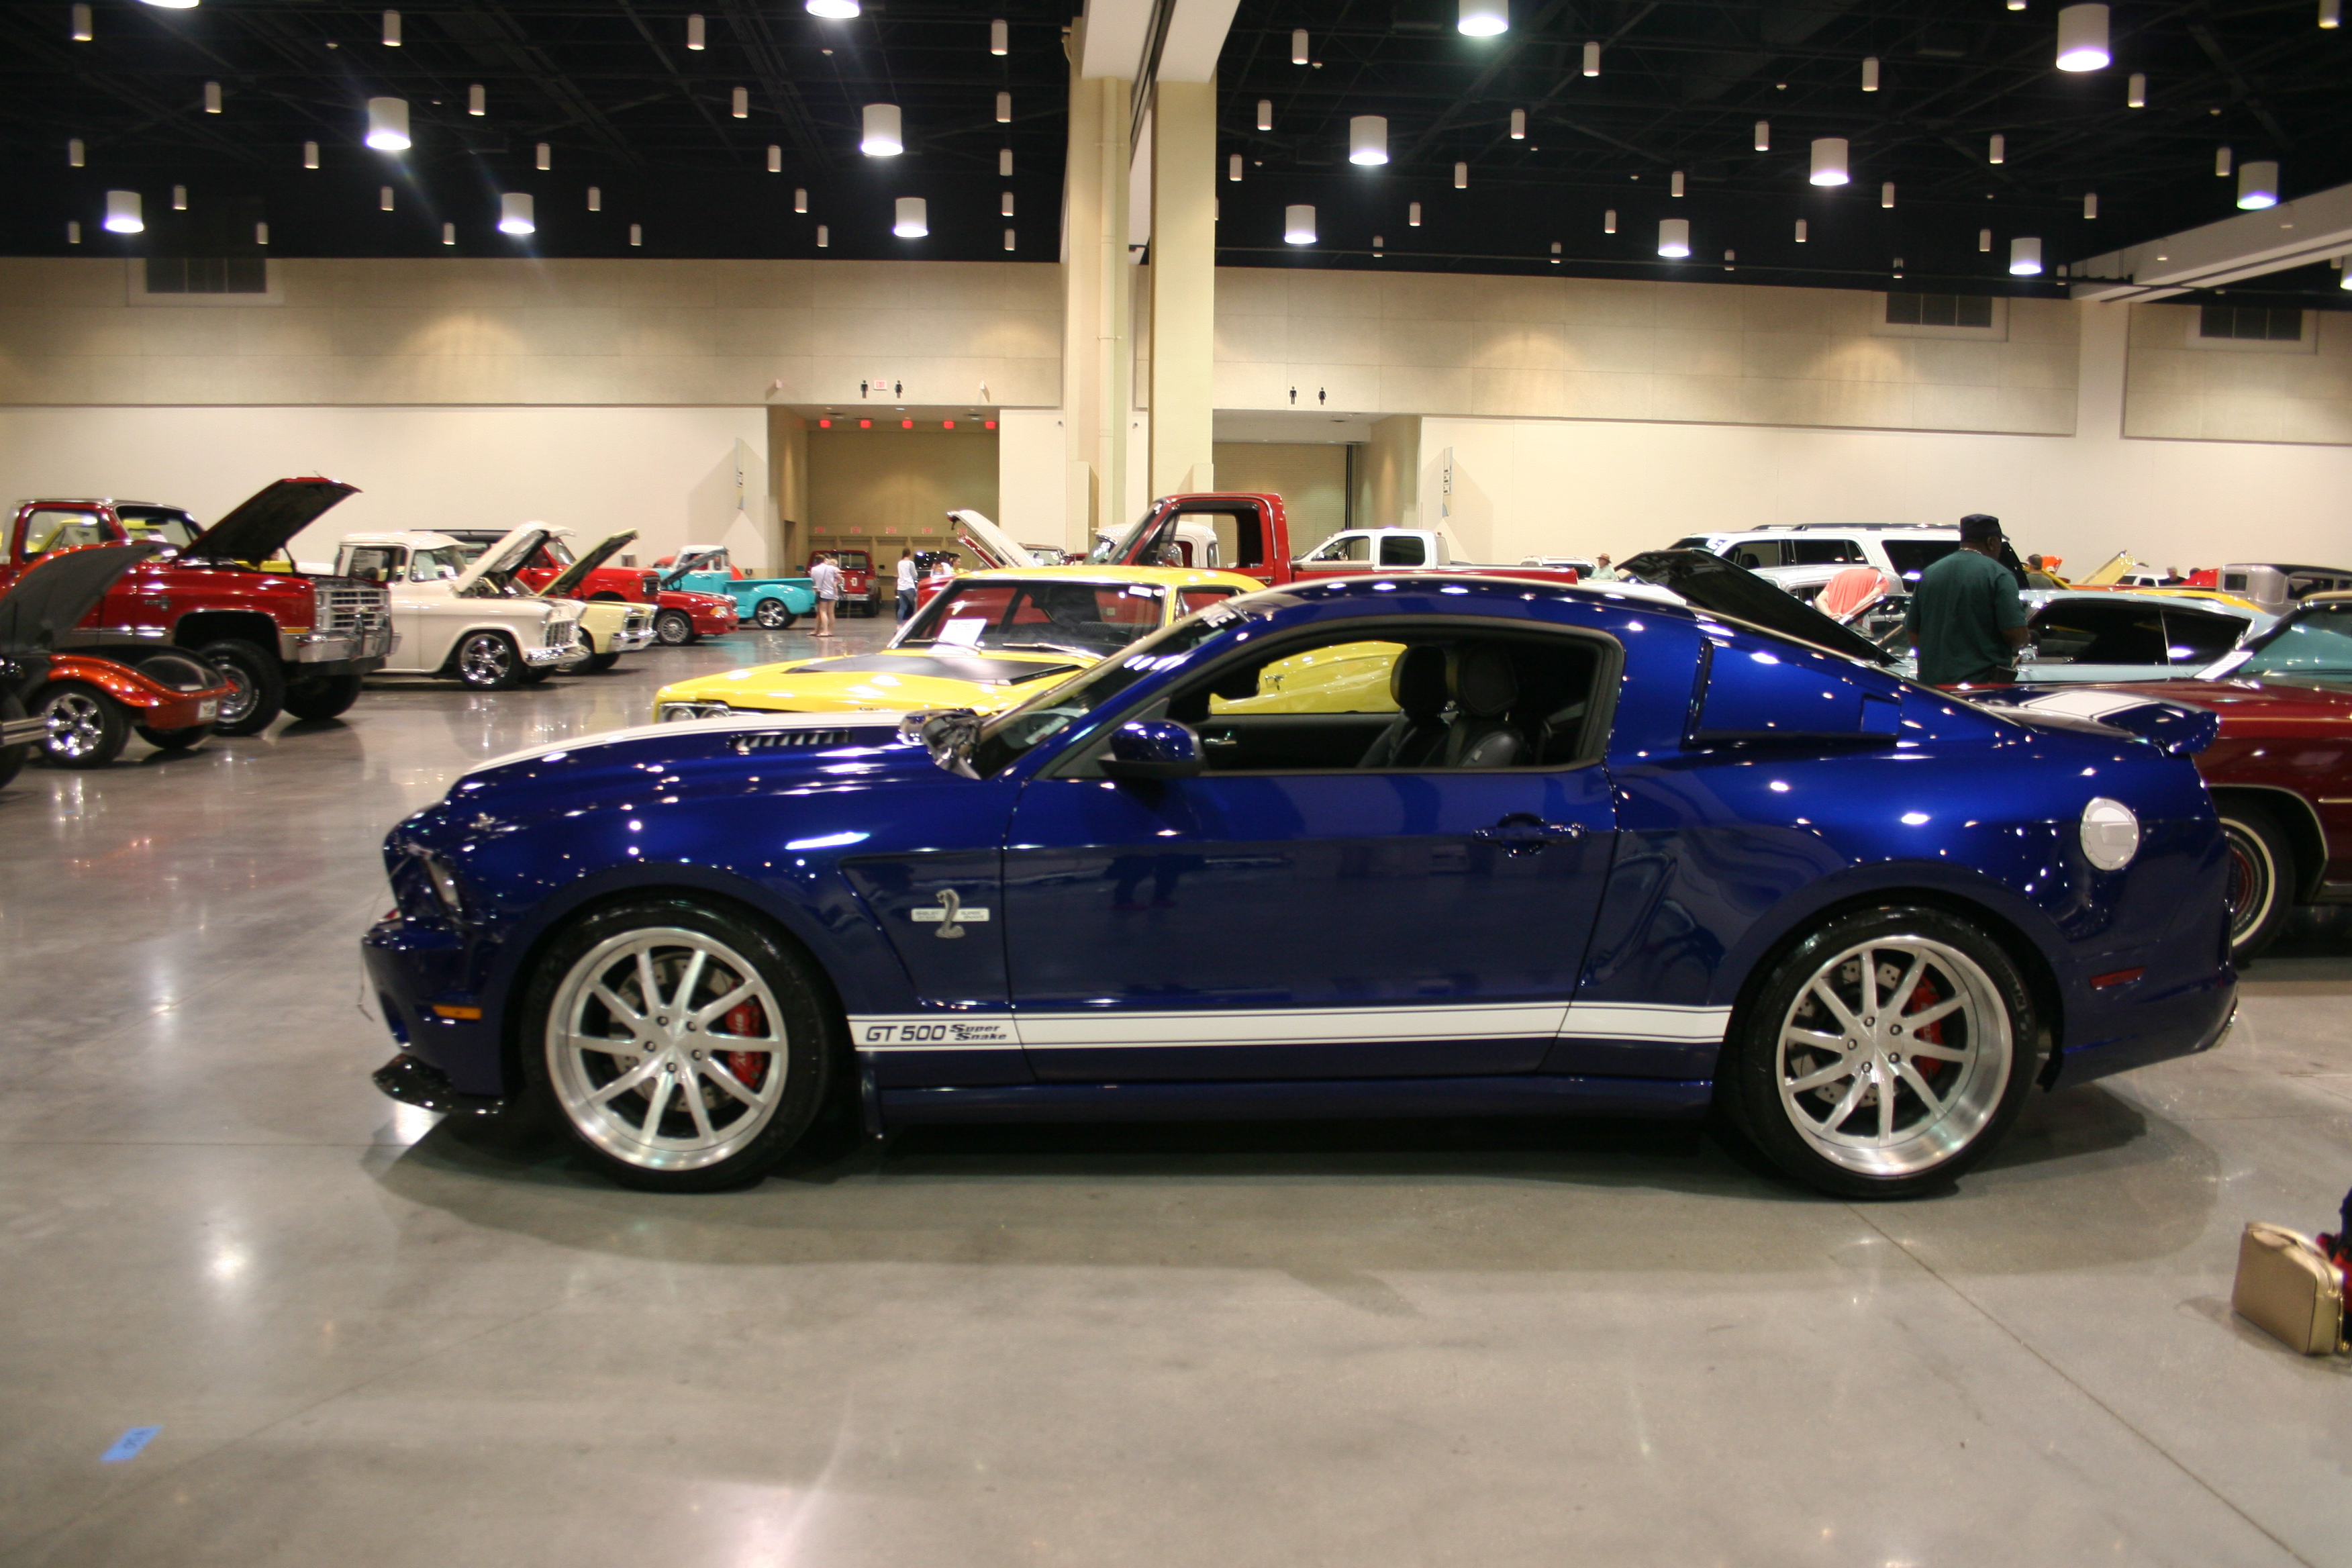 2014 ford mustang shelby gt500 for sale at vicari auctions biloxi 2017. Black Bedroom Furniture Sets. Home Design Ideas